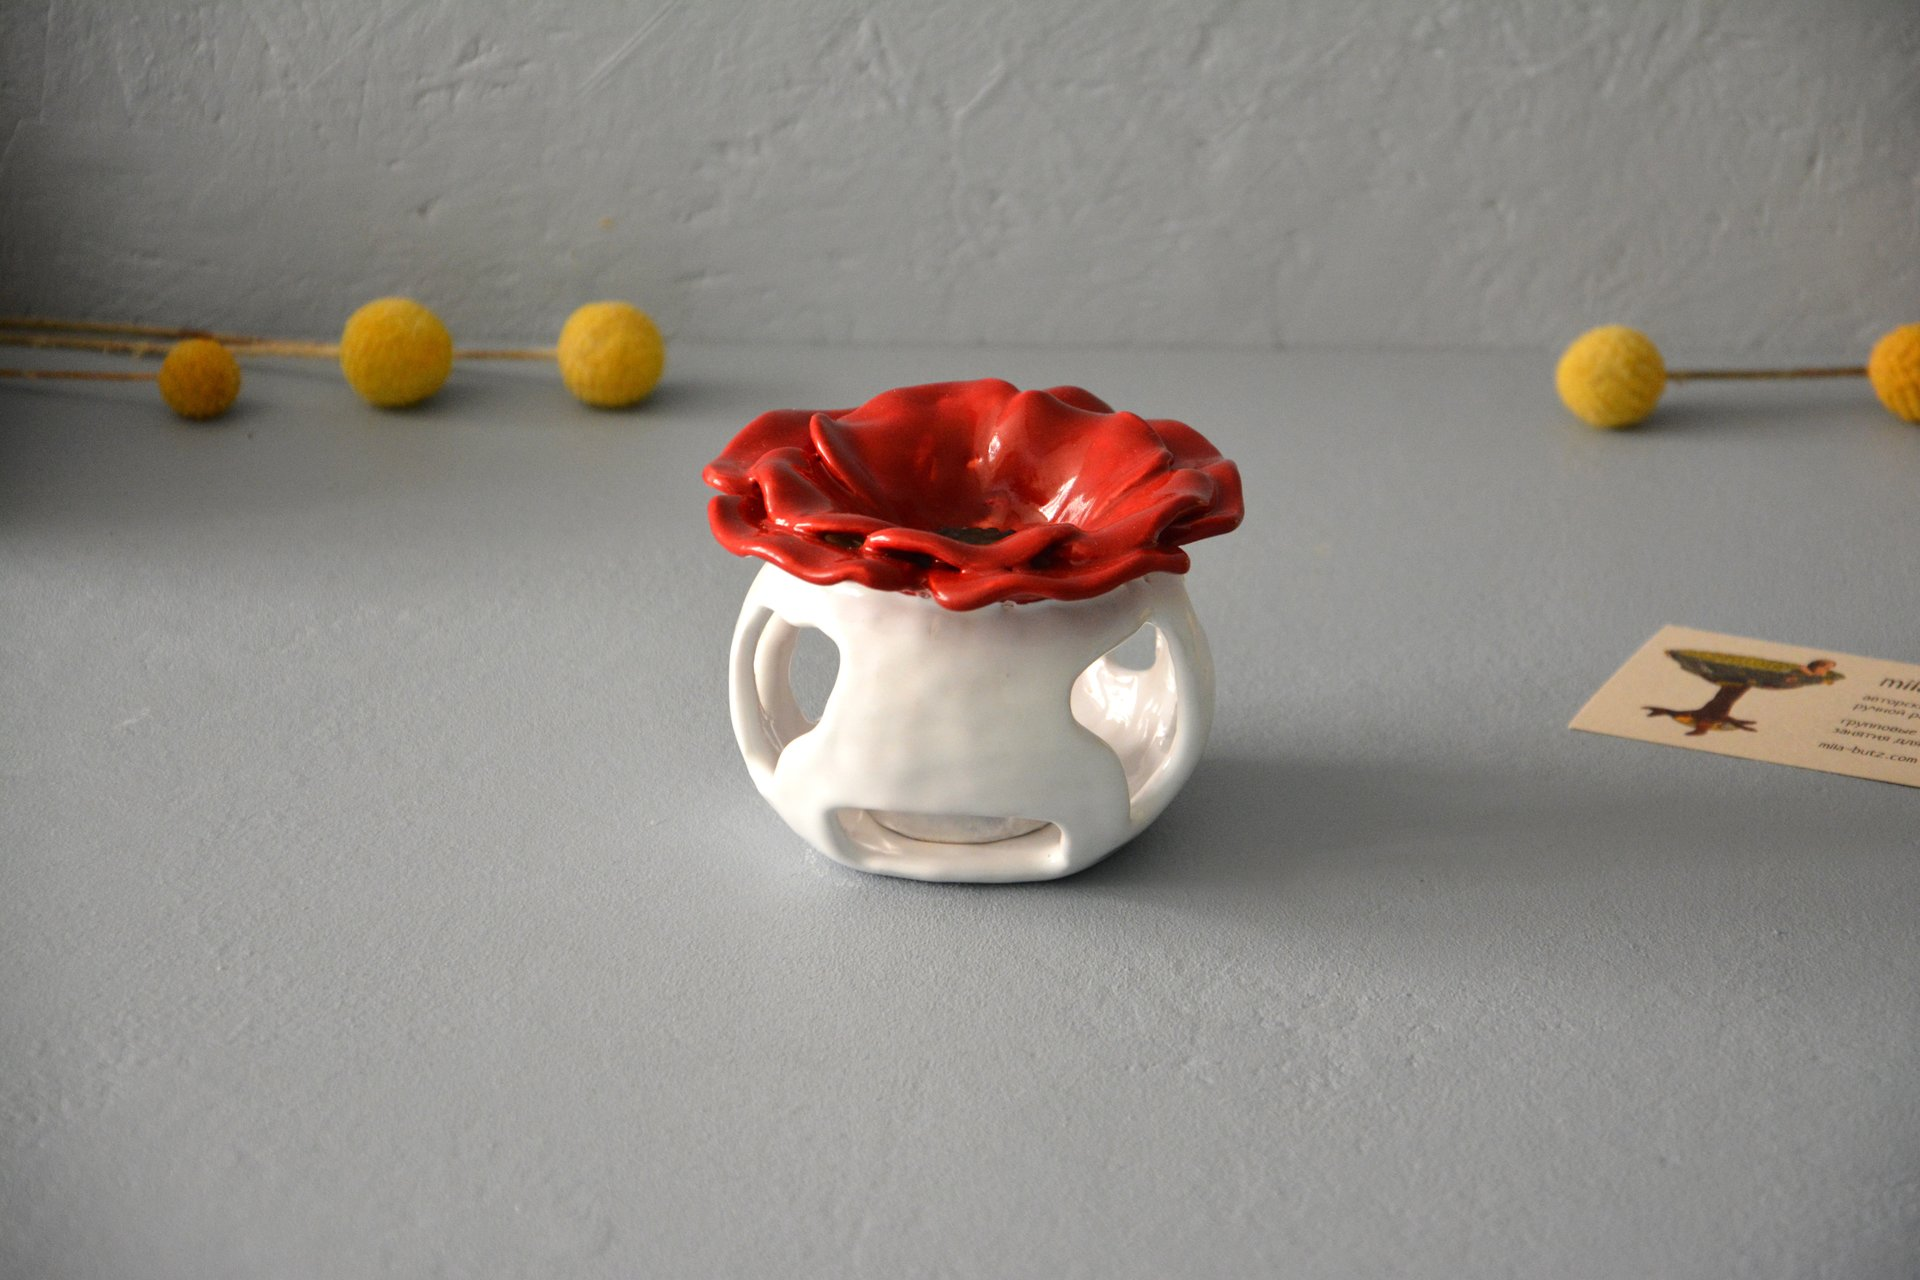 Ceramic Aroma Lamp Poppy, White with Red, color - white with red, height - 8.5 cm, diameter - 9 cm, photo 4 of 5.